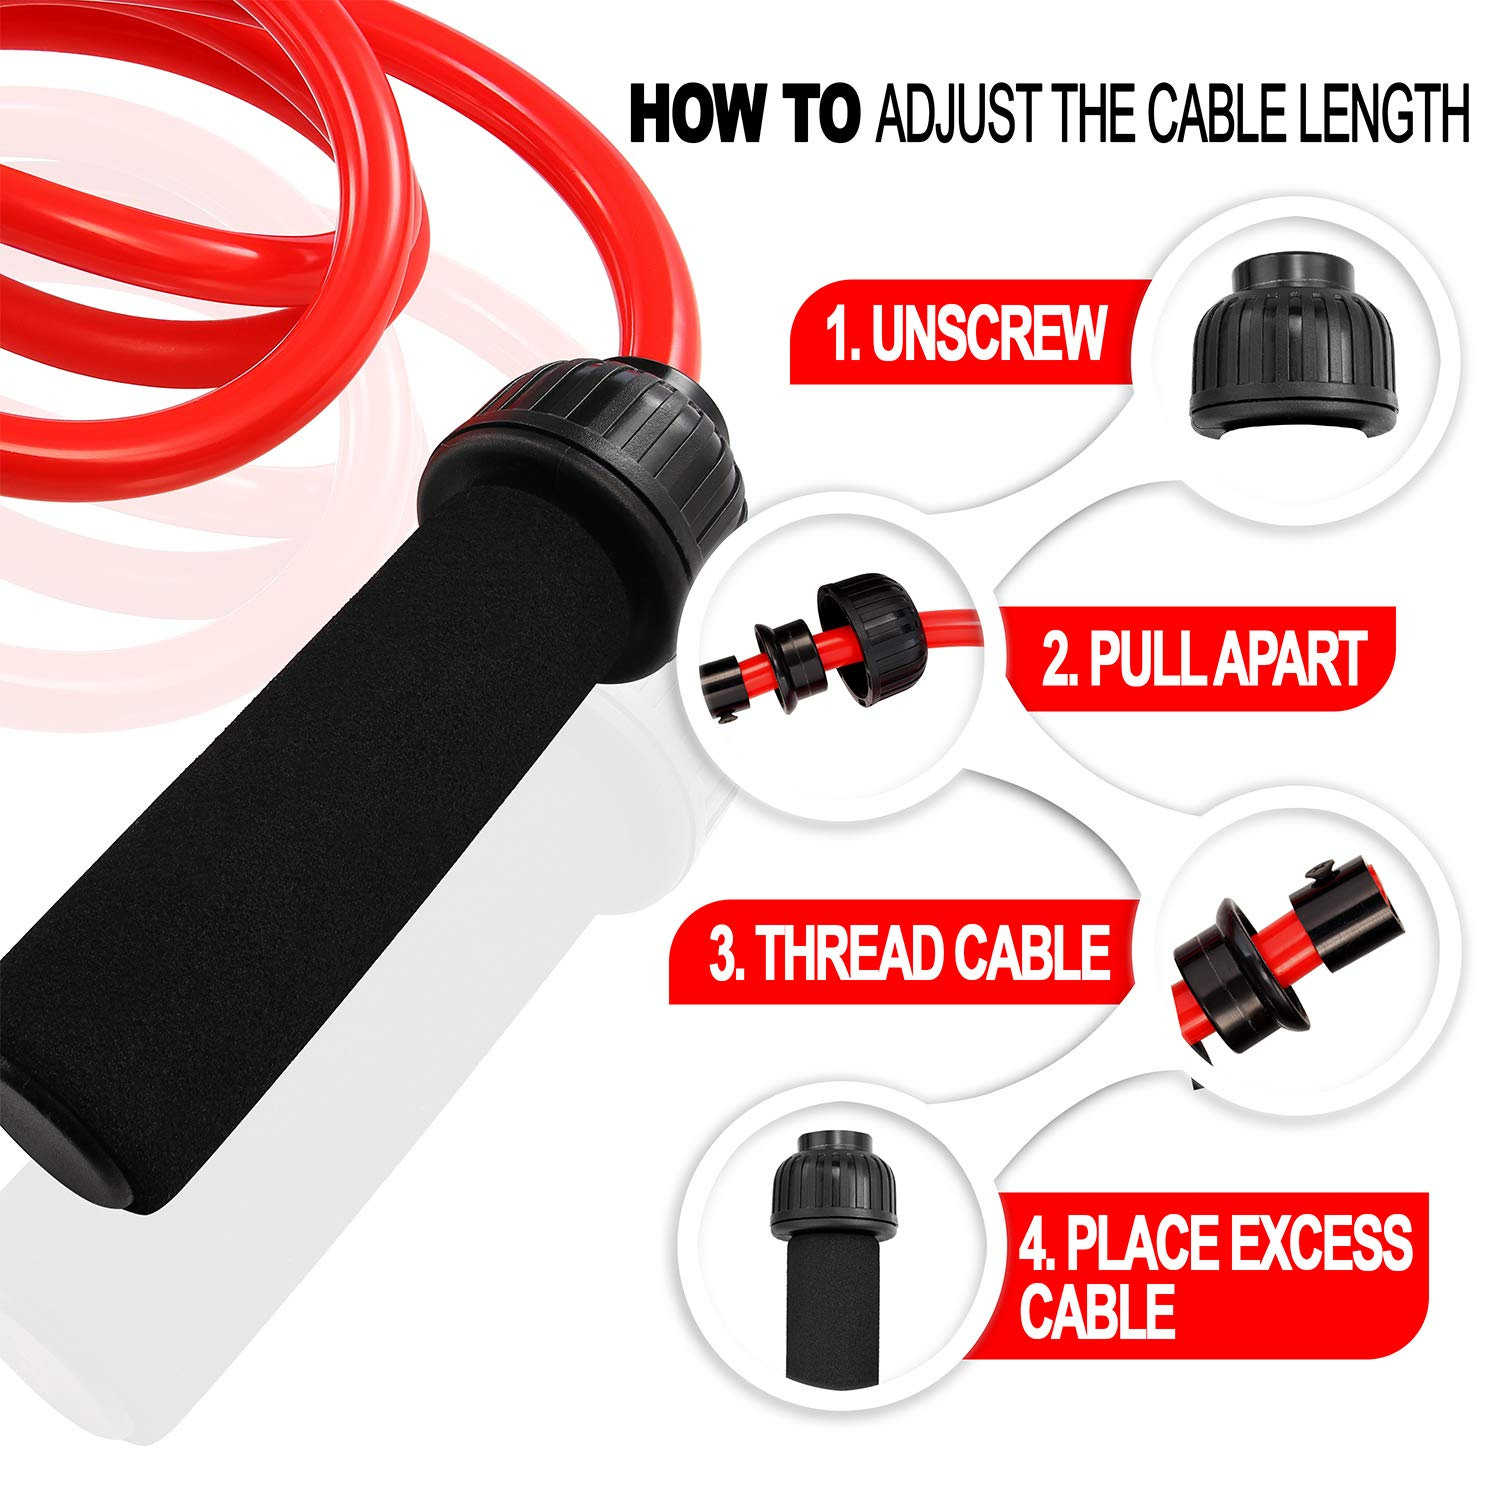 1LB Weighted Jump Rope - Heavy Jump Rope with Memory Non-Slip Cushioned Foam Grip Handles for Fitness Workouts Endurance and Strength Training Solid PVC for Crossfit and Boxing